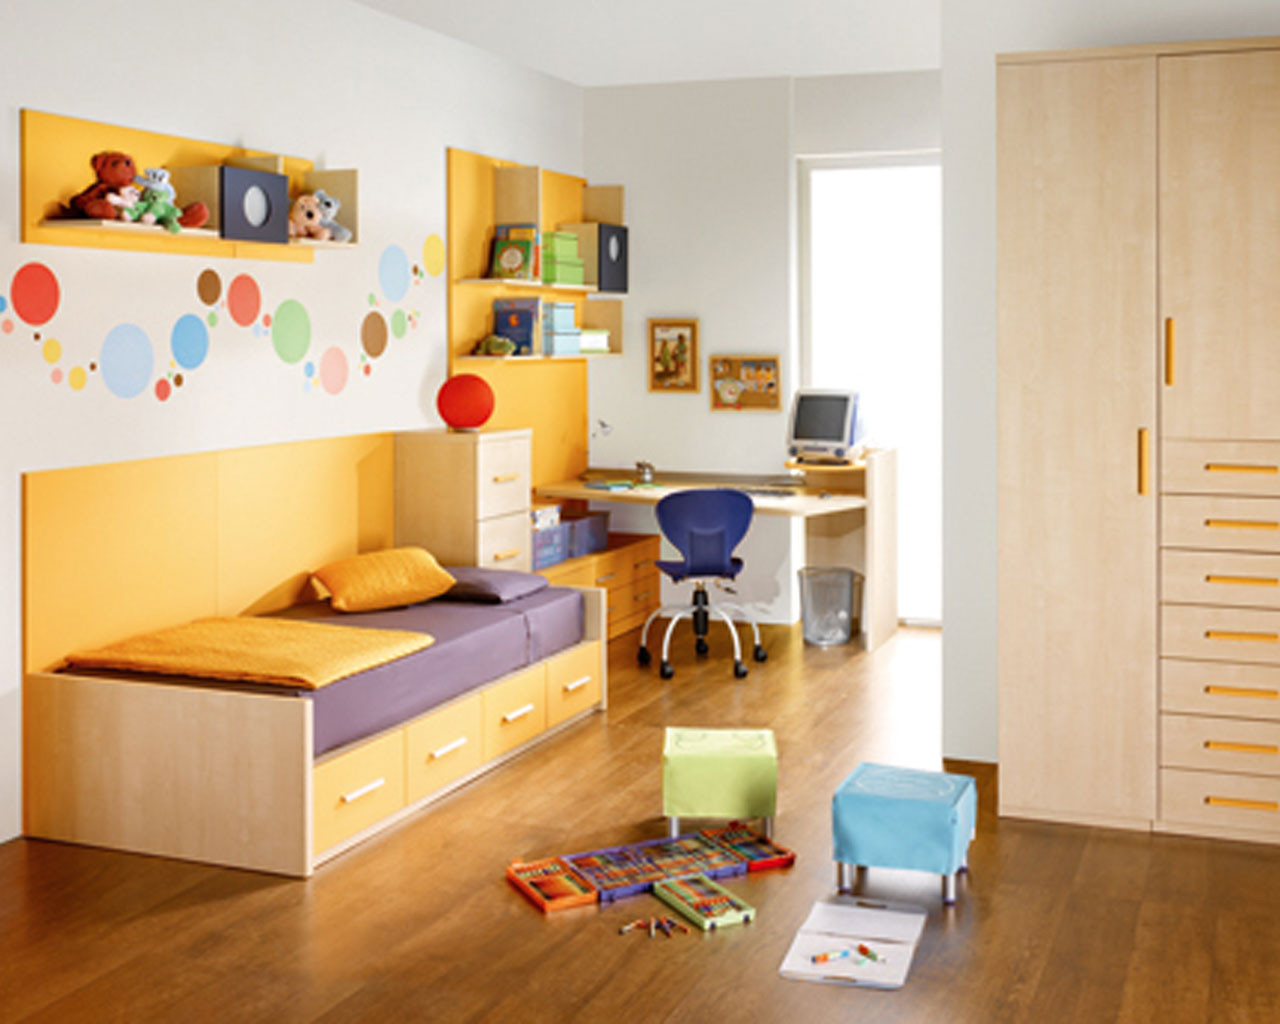 Best ideas about Kids Room Decor . Save or Pin Kids Room Decor and Design Ideas as the Easy yet Effective Now.